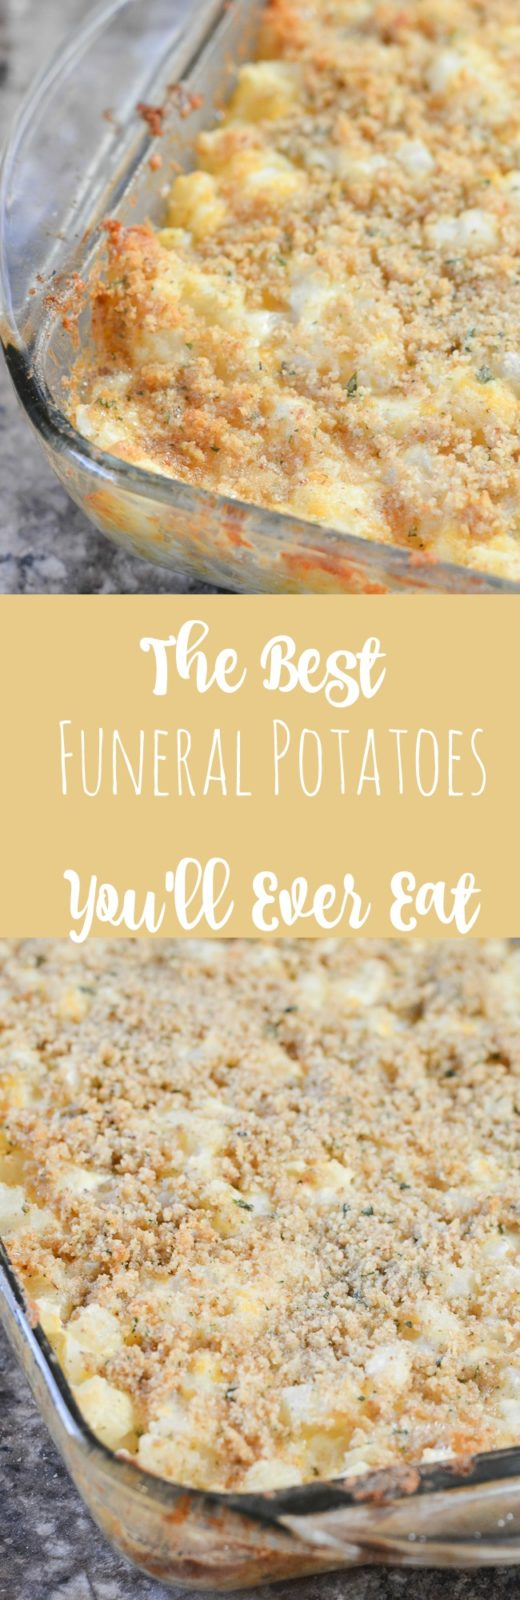 Yummy Potatoes (aka, Funeral Potatoes)